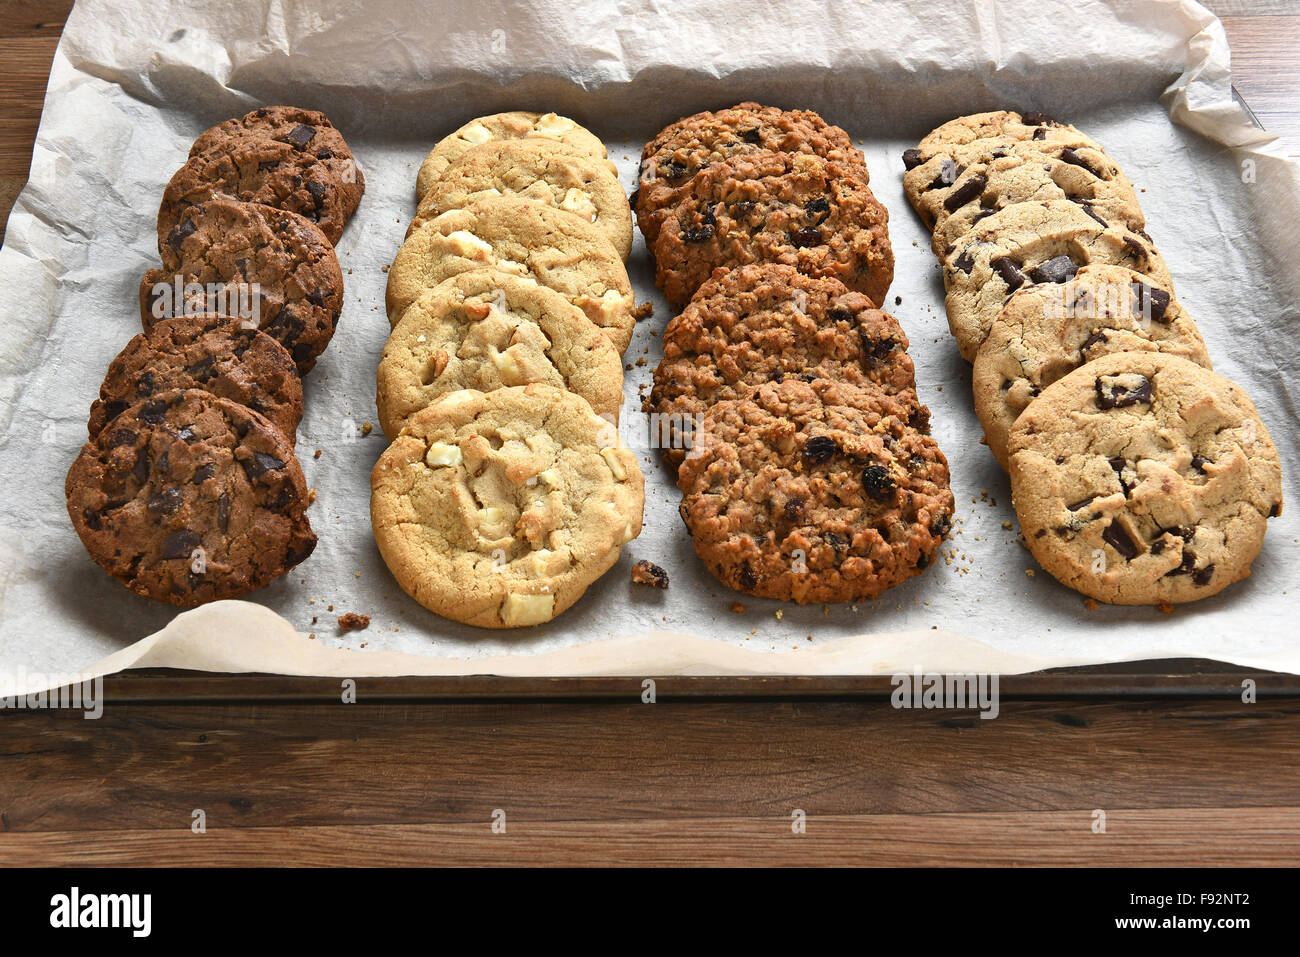 Closeup Of A Tray Of Fresh Baked Cookies, Chocolate Chip, Oatmeal Raisin  Chocolate And White Chocolate Chip Cookies On Baking Sh